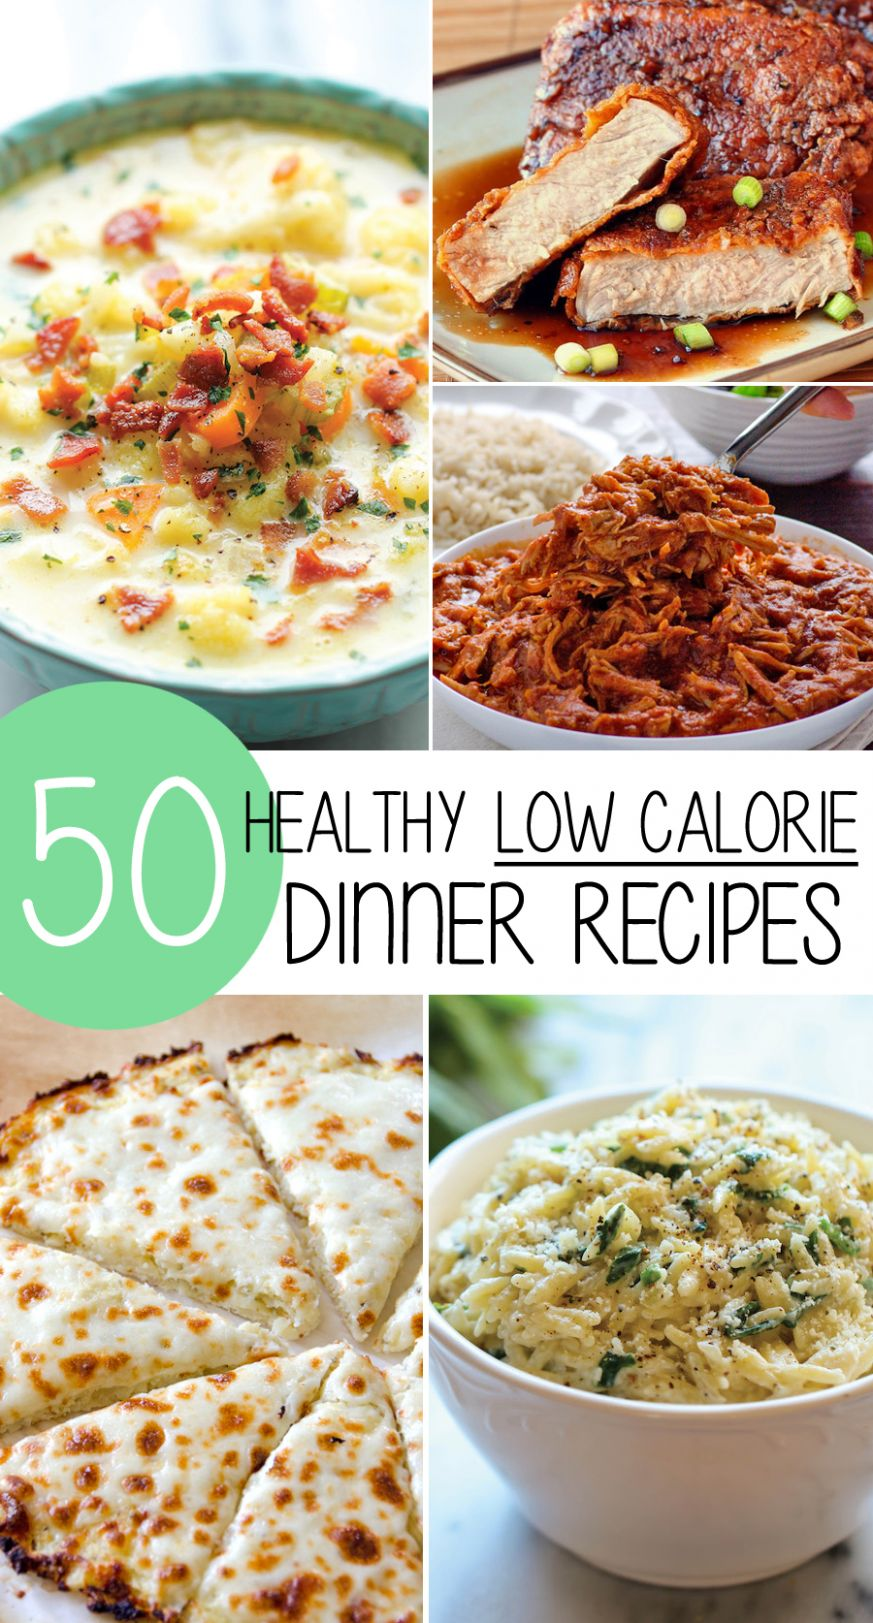 12 Healthy Low Calorie Weight Loss Dinner Recipes! – TrimmedandToned - Healthy Recipes To Lose Weight